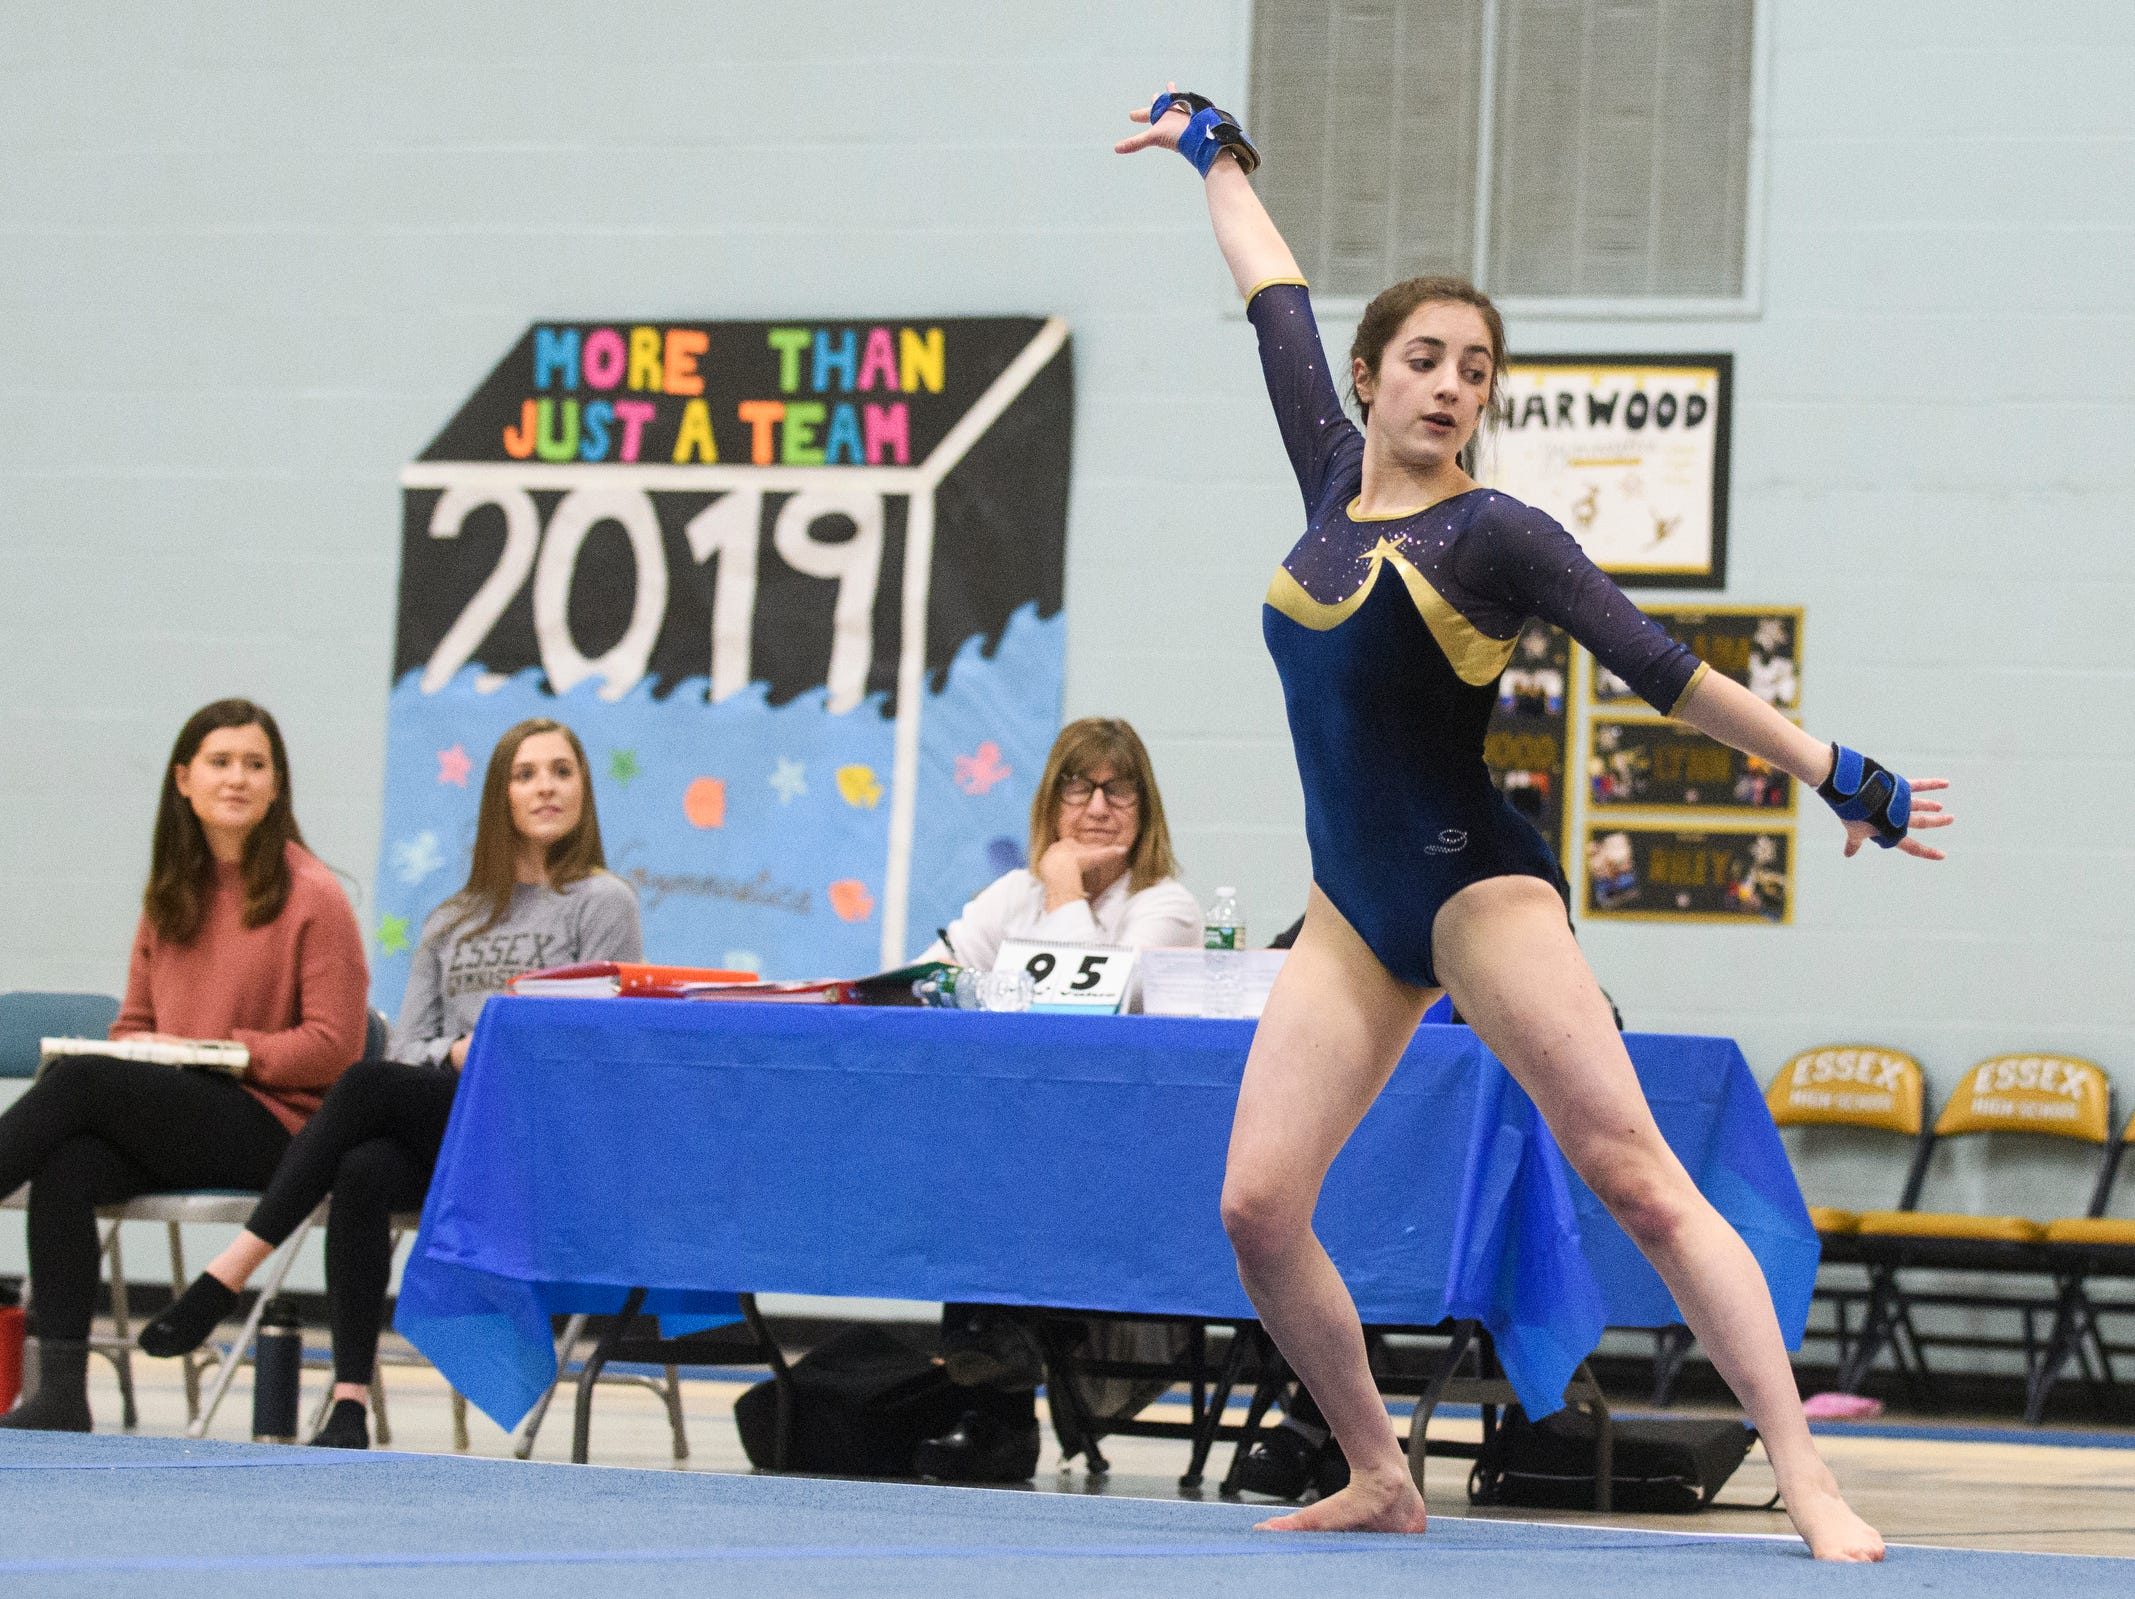 Essex's Kiara Keenan comets in the floor routine during the 2019 high school gymnastics championship at Essex High School on Saturday afternoon February 16, 2019 in Essex, Vermont.